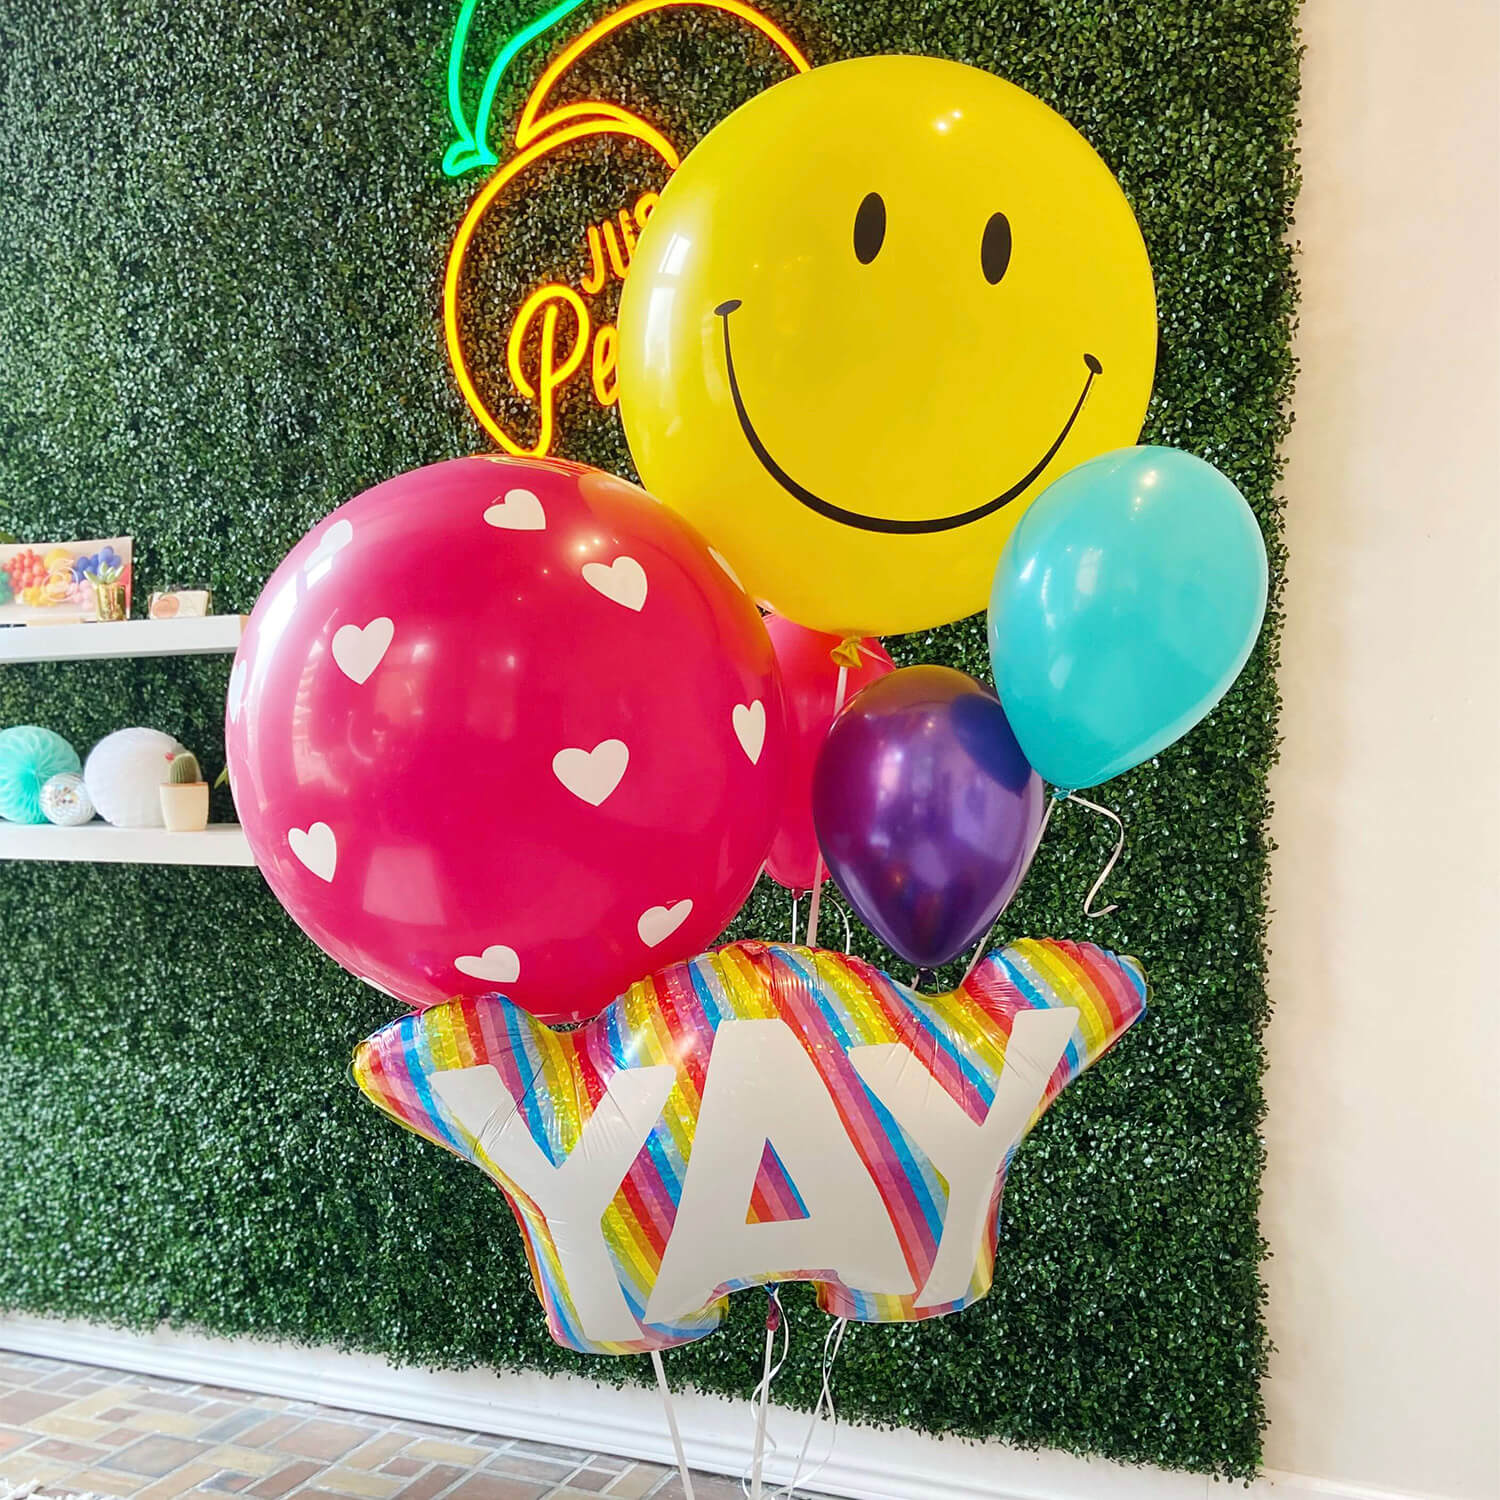 Just Peachy makes giant helium bouquets, like this bundle of a giant smiley face, giant heart balloon, and YAY rainbow lettered balloon.